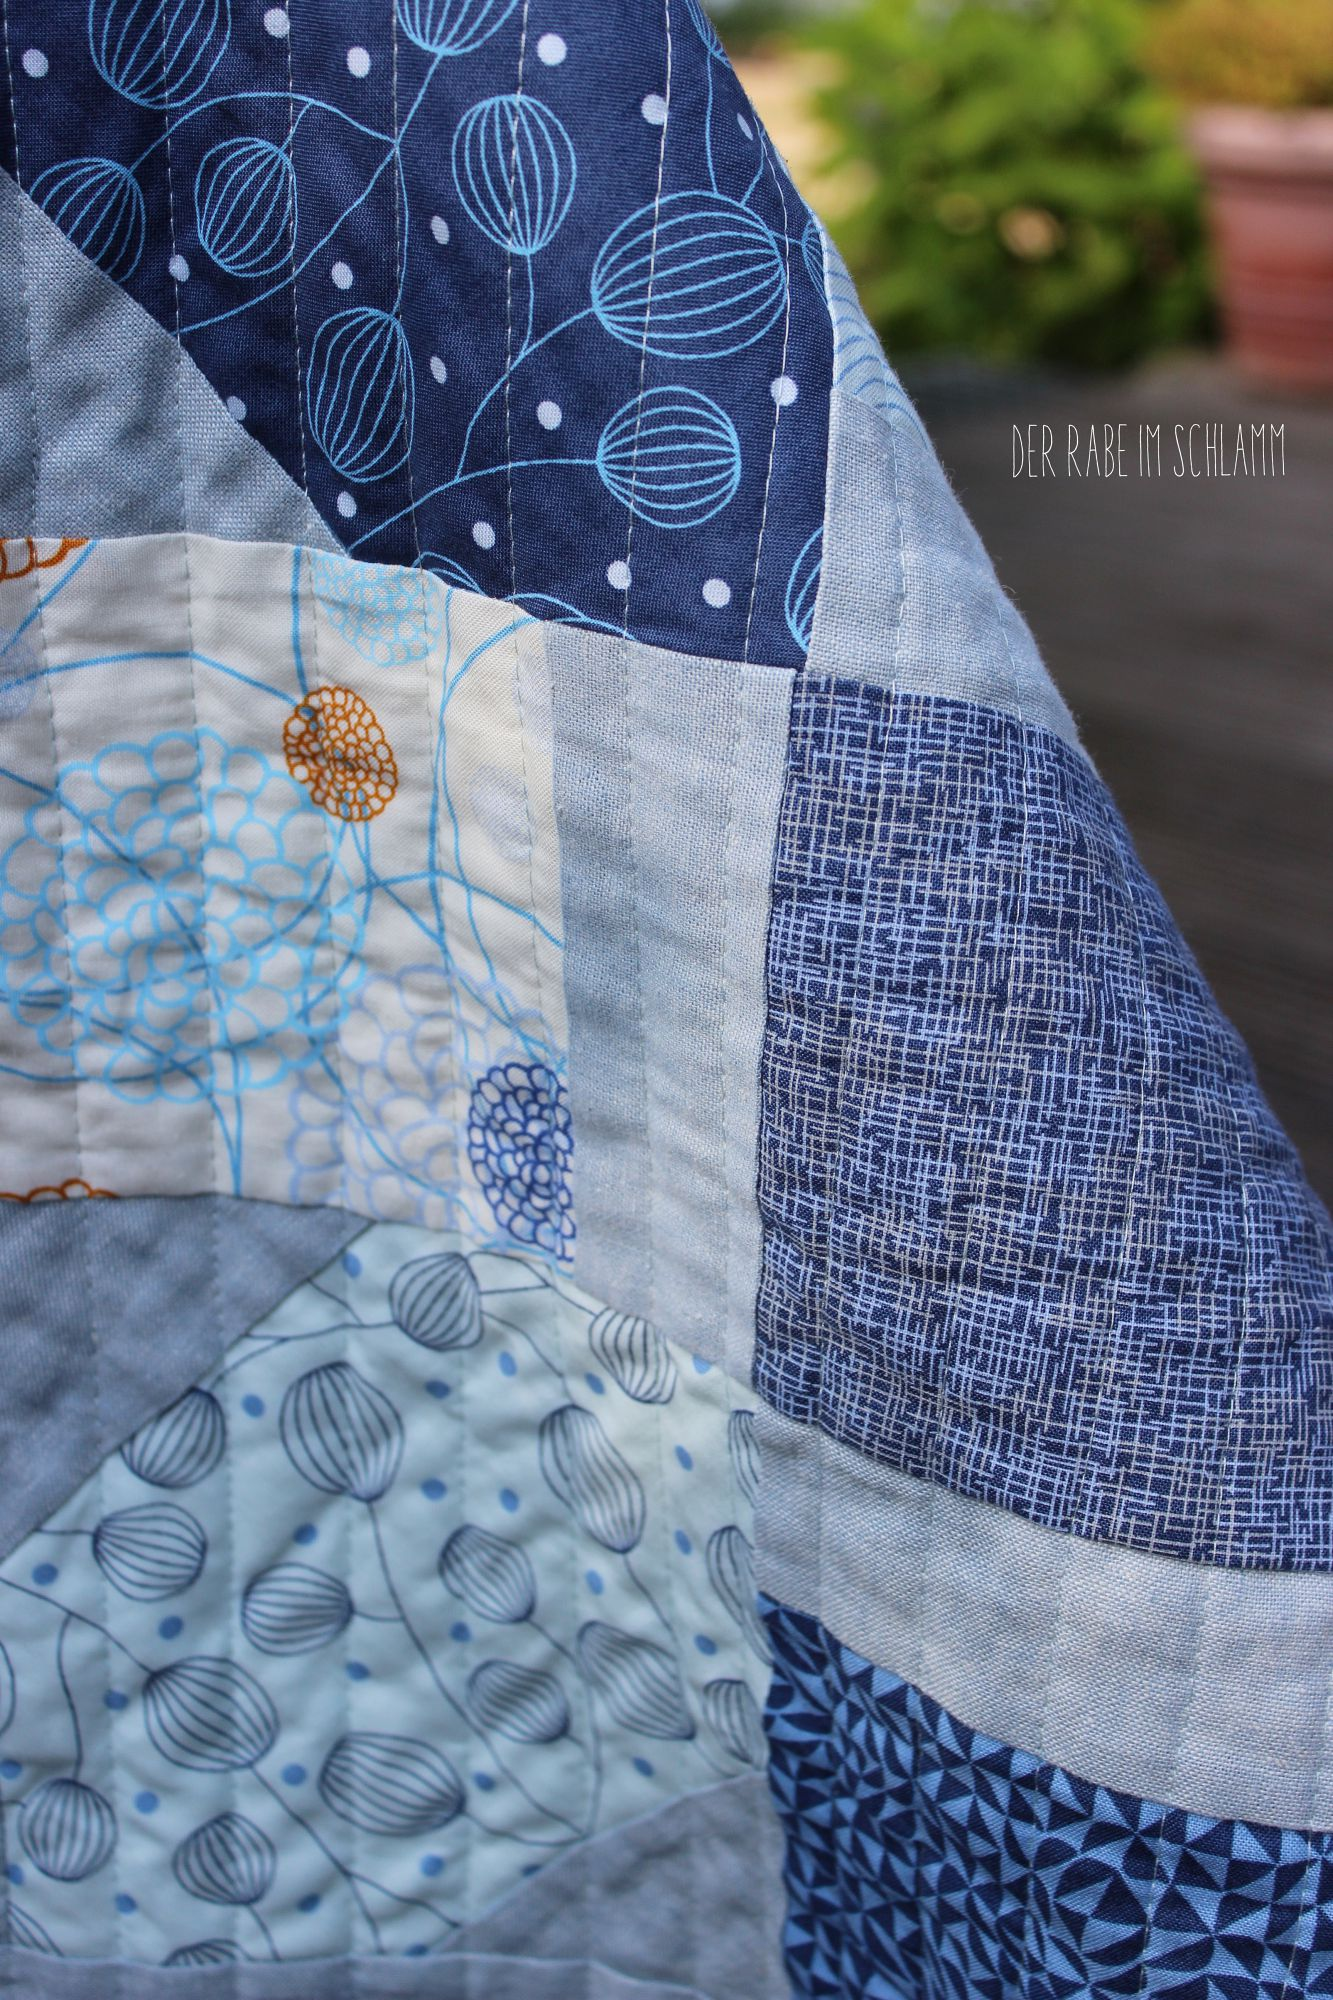 Der Rabe im Schlamm, Quilt, für Männer, Jolly Bar Jazz Quilt, True Blue, Essex Yarn Dyed Linen, showmethemoda